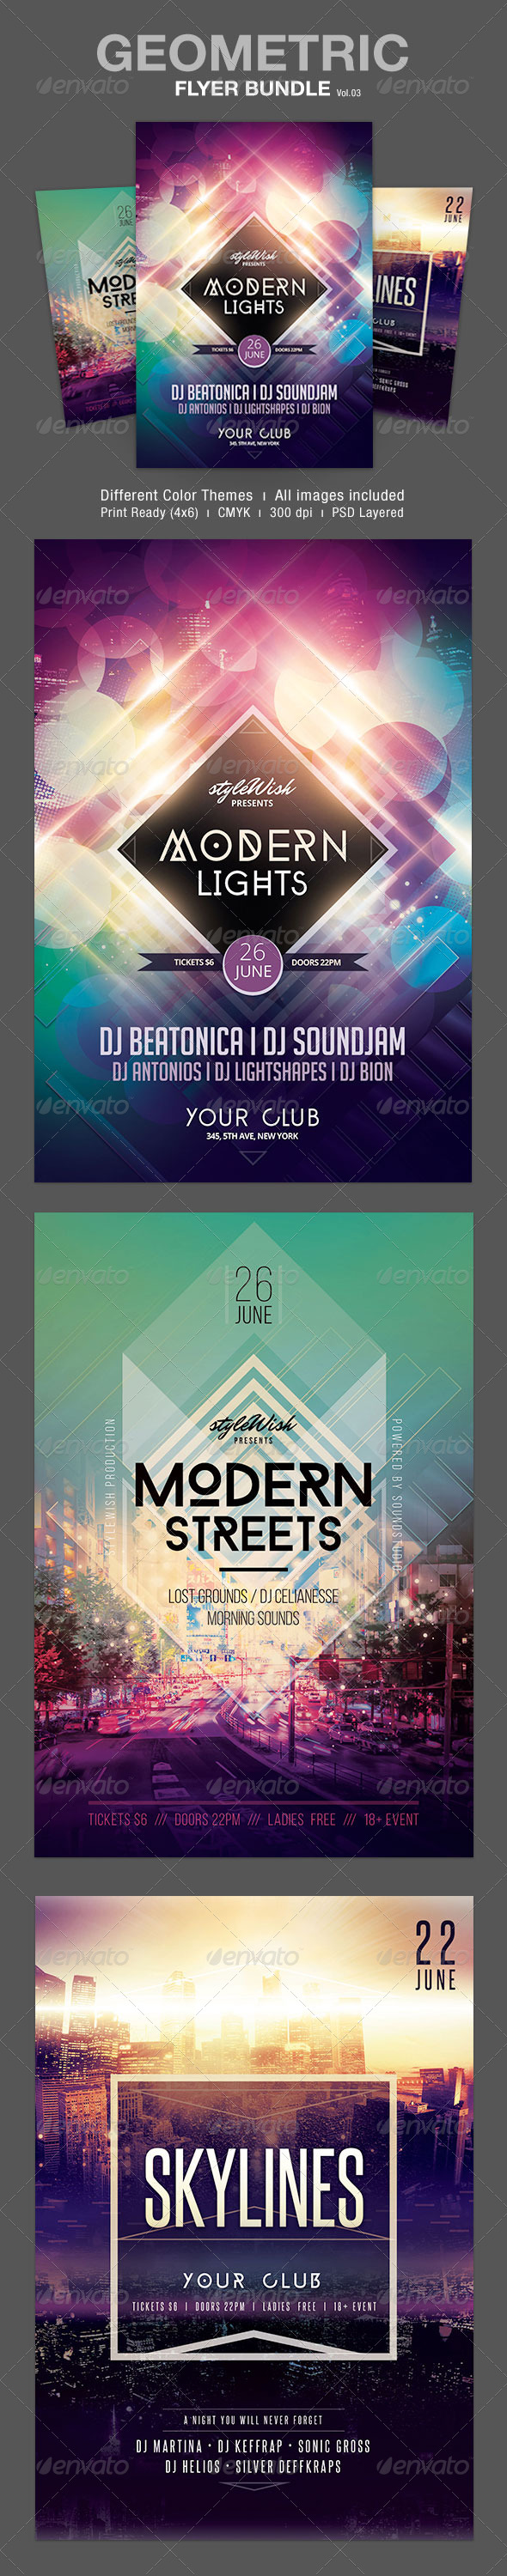 GraphicRiver Geometric Flyer Bundle Vol.03 7351655